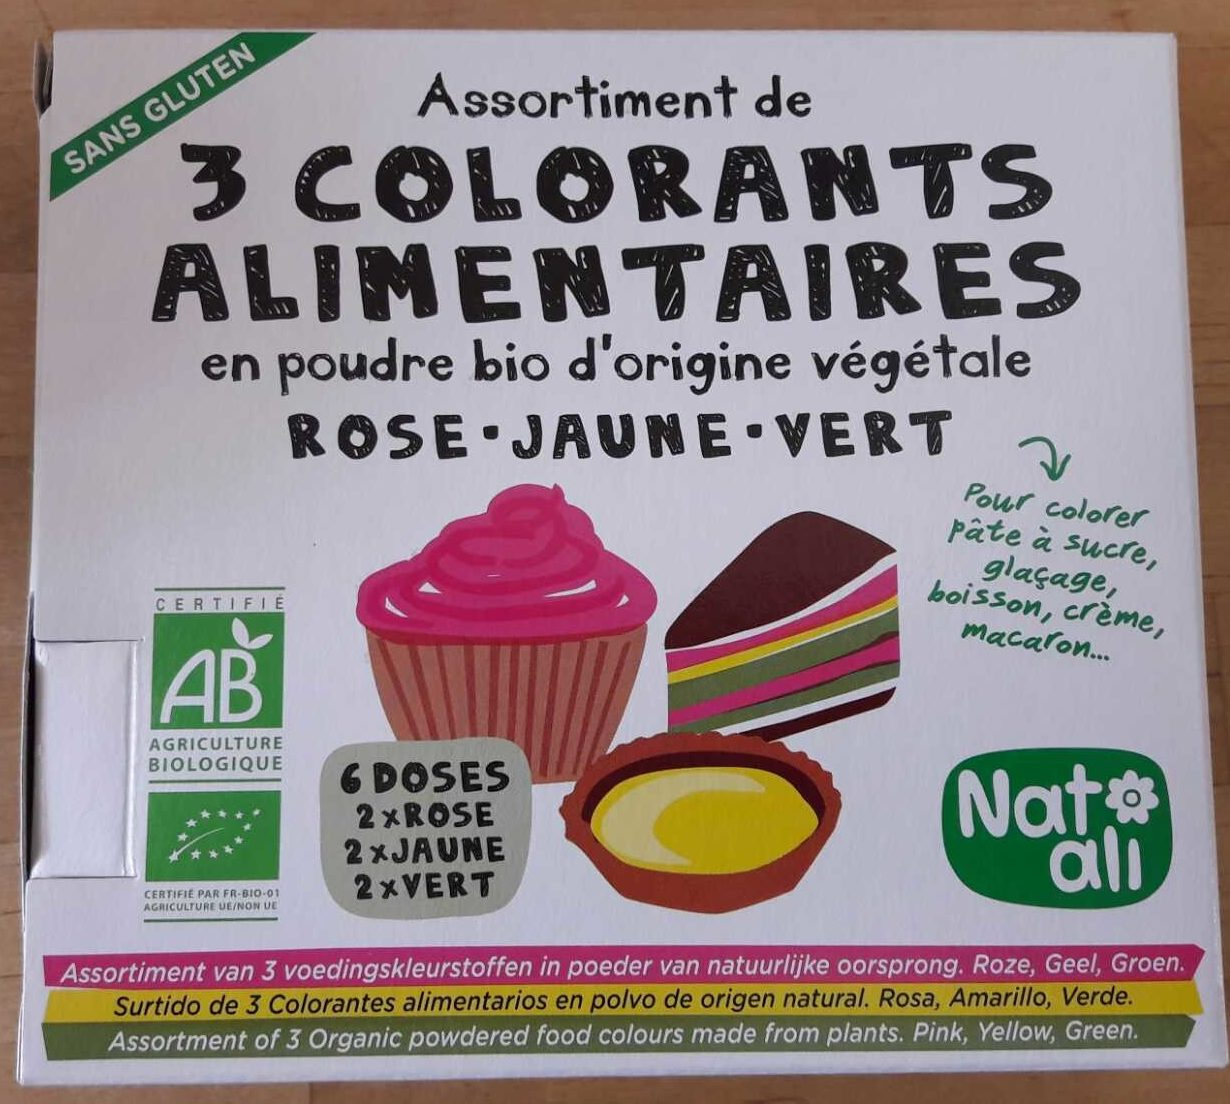 COLORANT ALIMENTAIRE 3 COULEURS 6 DOSES - Product - fr